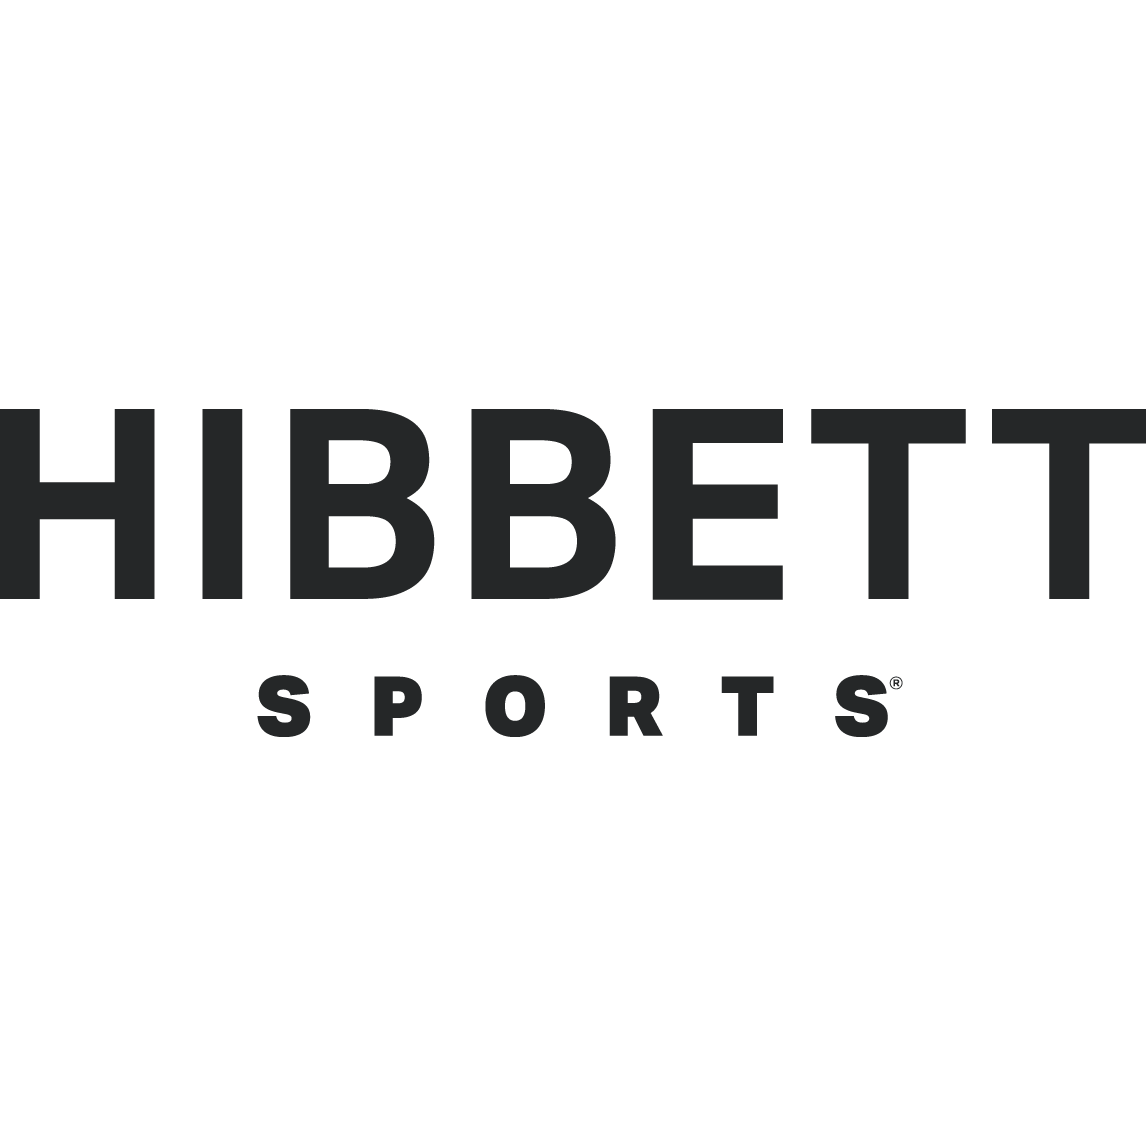 Hibbett Sports - Dallas, TX - Shoes